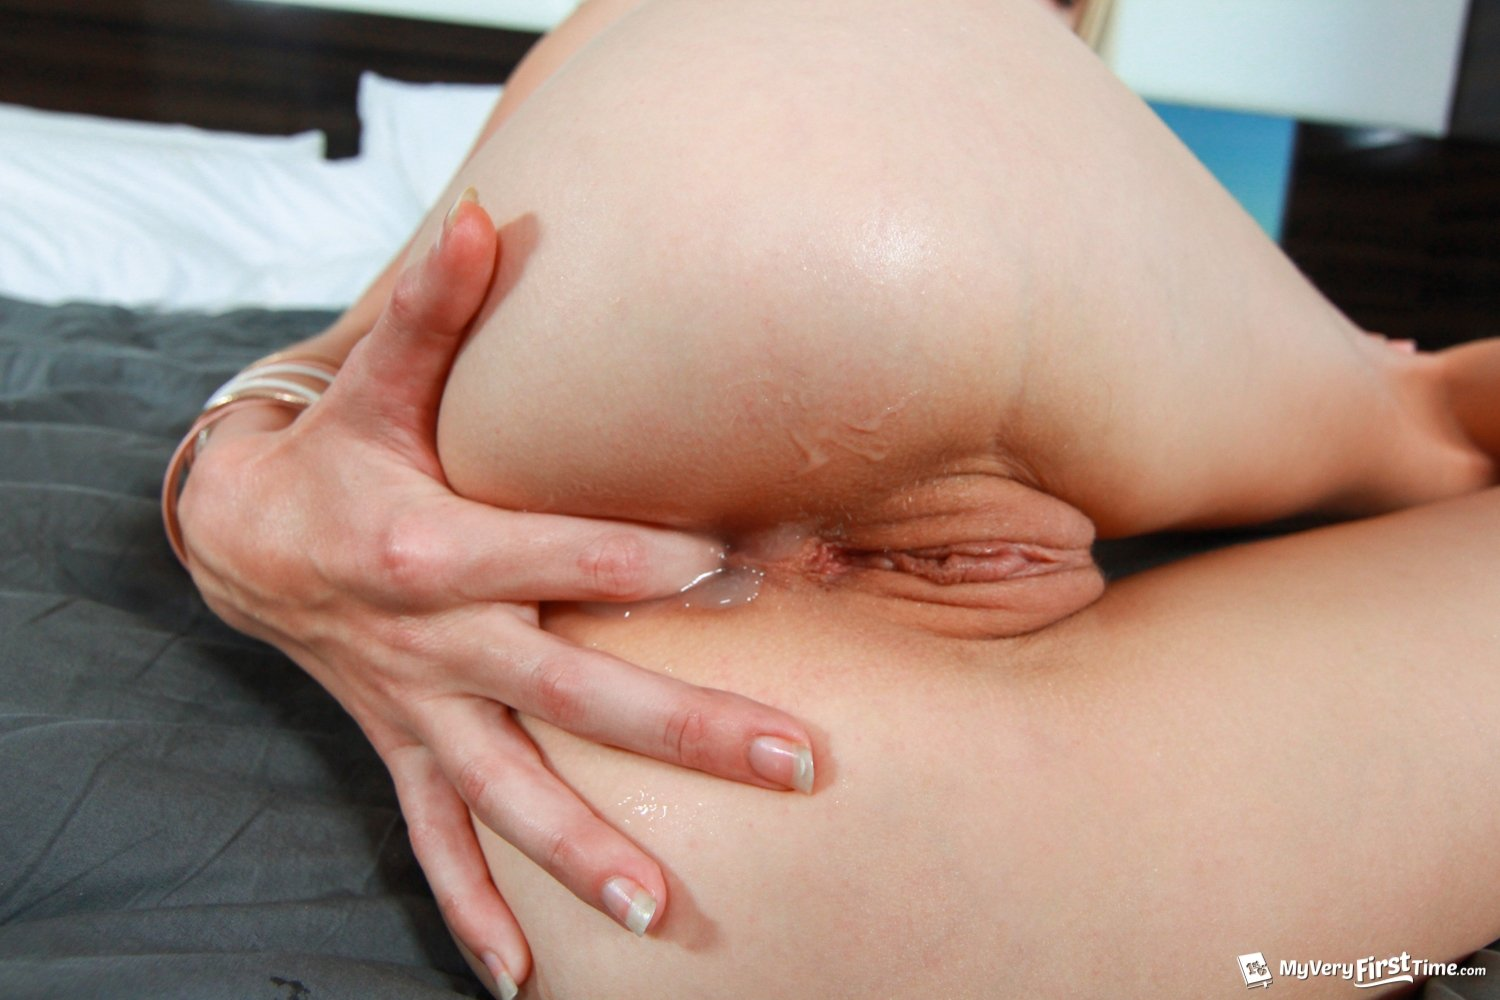 big load creampie porn there